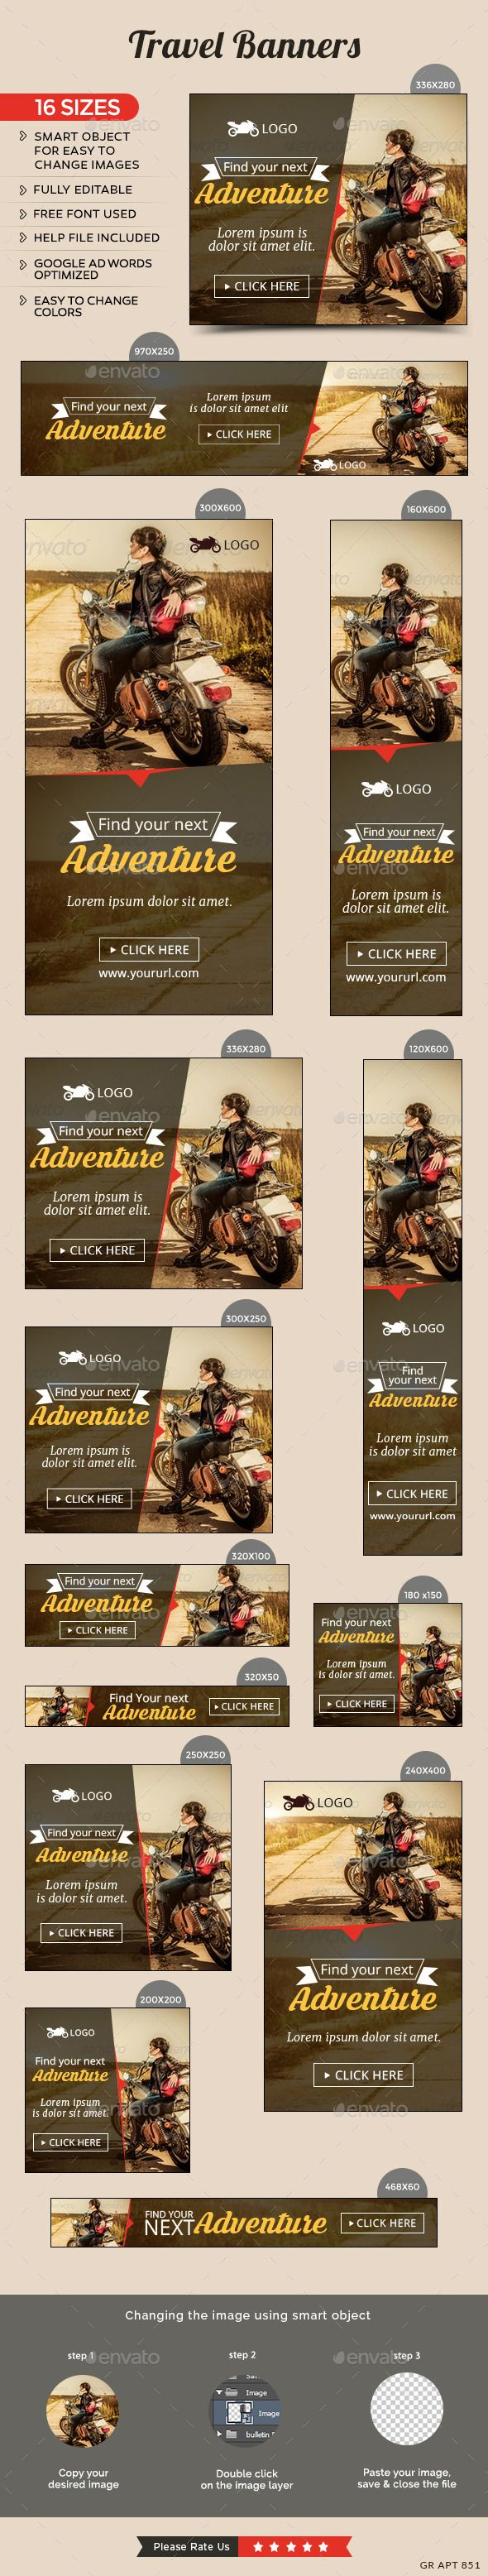 Travel Banners Template #design #web #ads Download: http://graphicriver.net/item/travel-banners/12646348?ref=ksioks